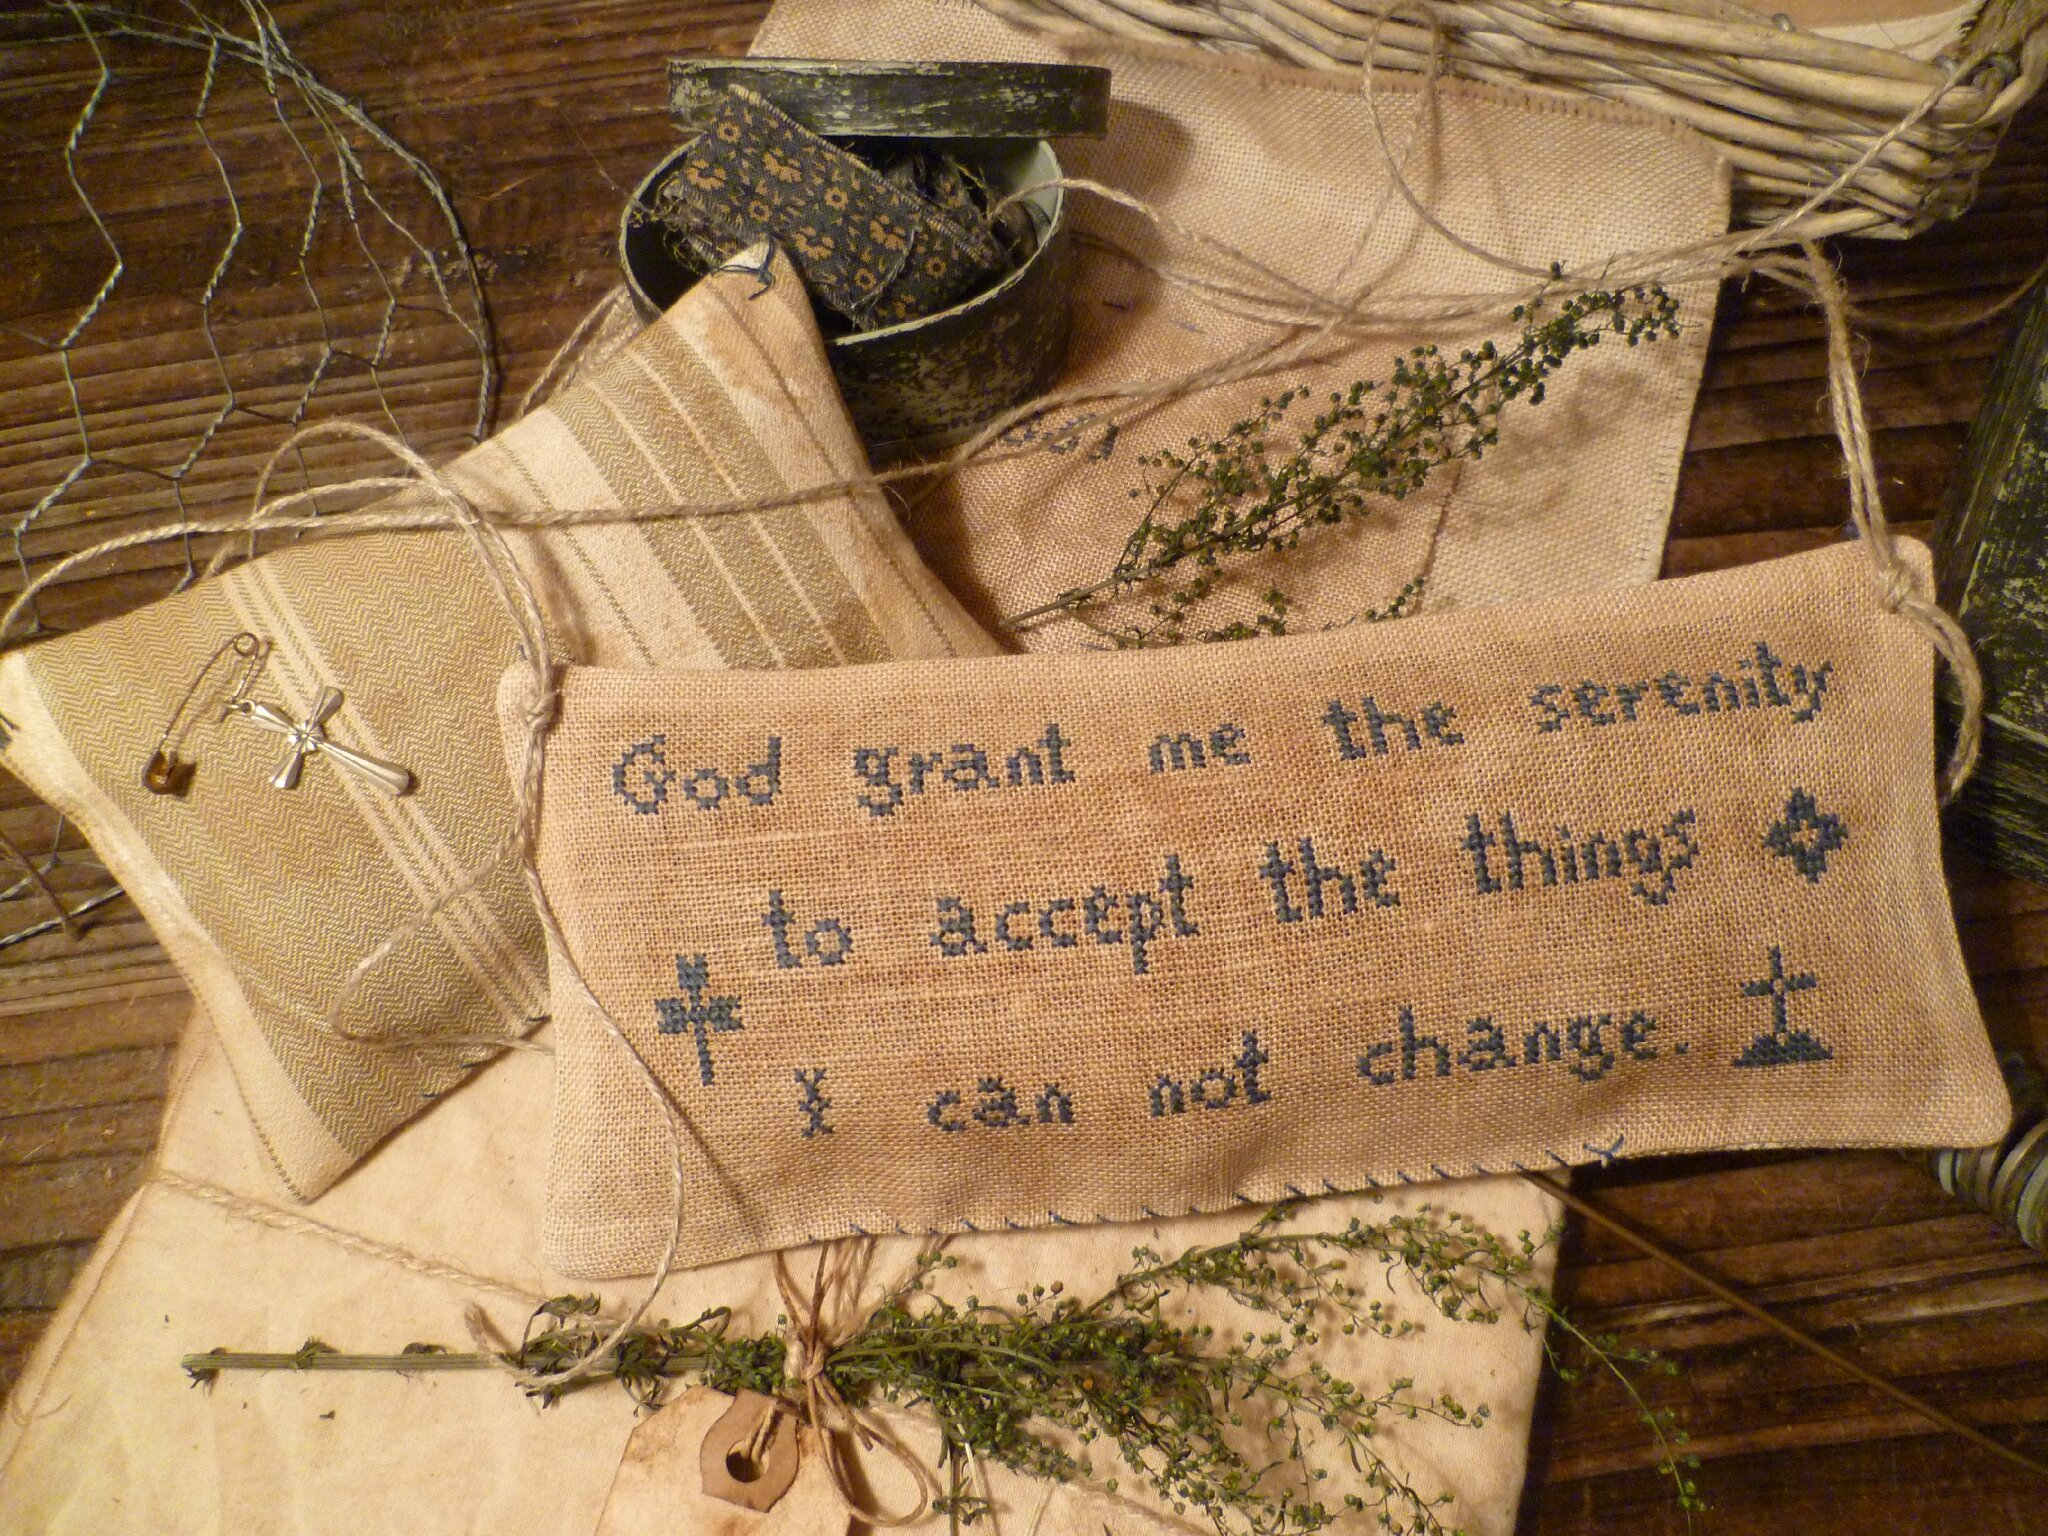 Set of 3 patterns: When this you see, remember me + God grant me the serenity+ Annie Virginia Sanders) US $ 16.00